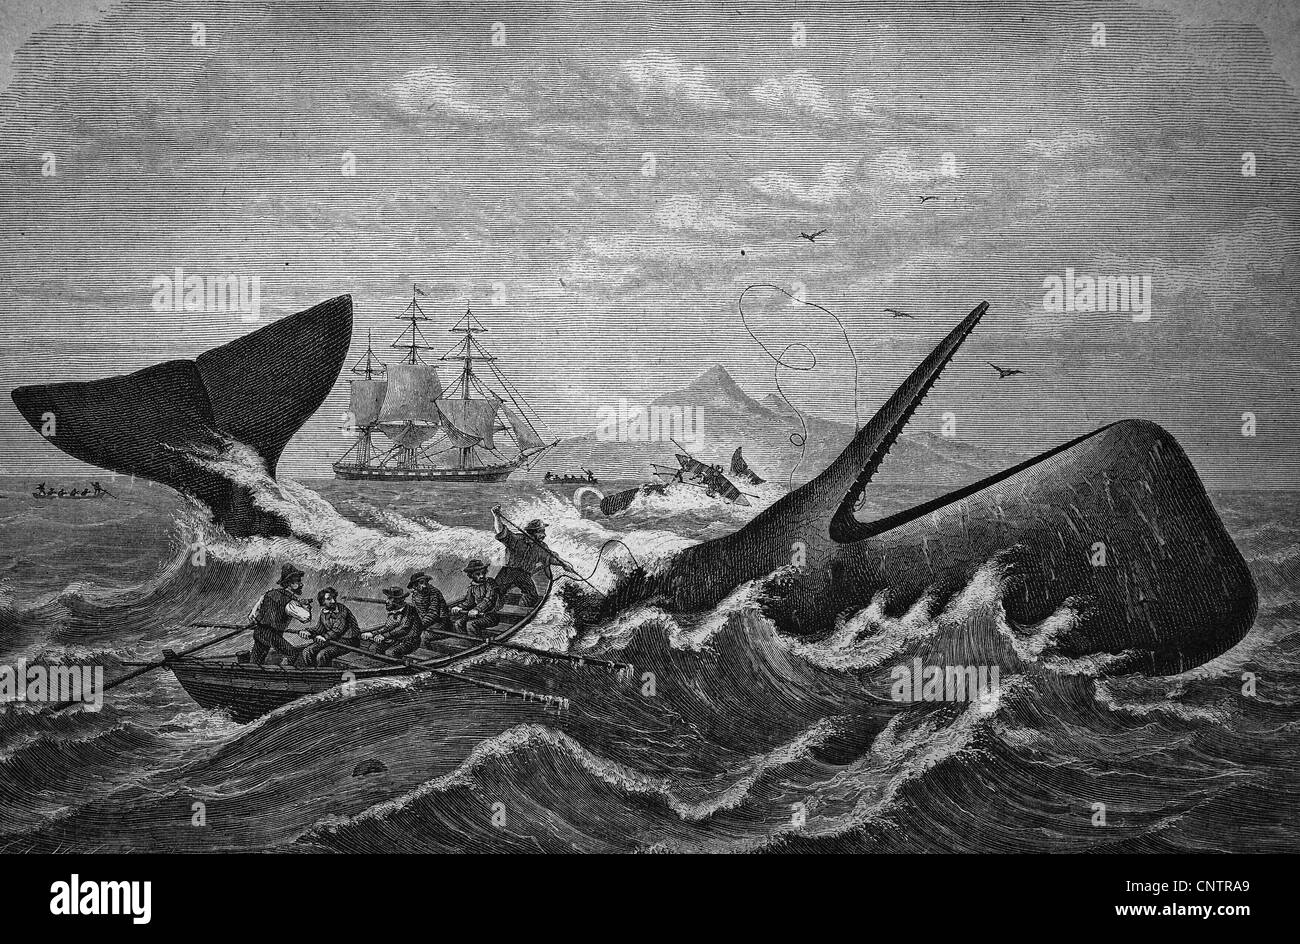 Sperm whale being hunted by whalers, historical woodcut, circa 1870 - Stock Image